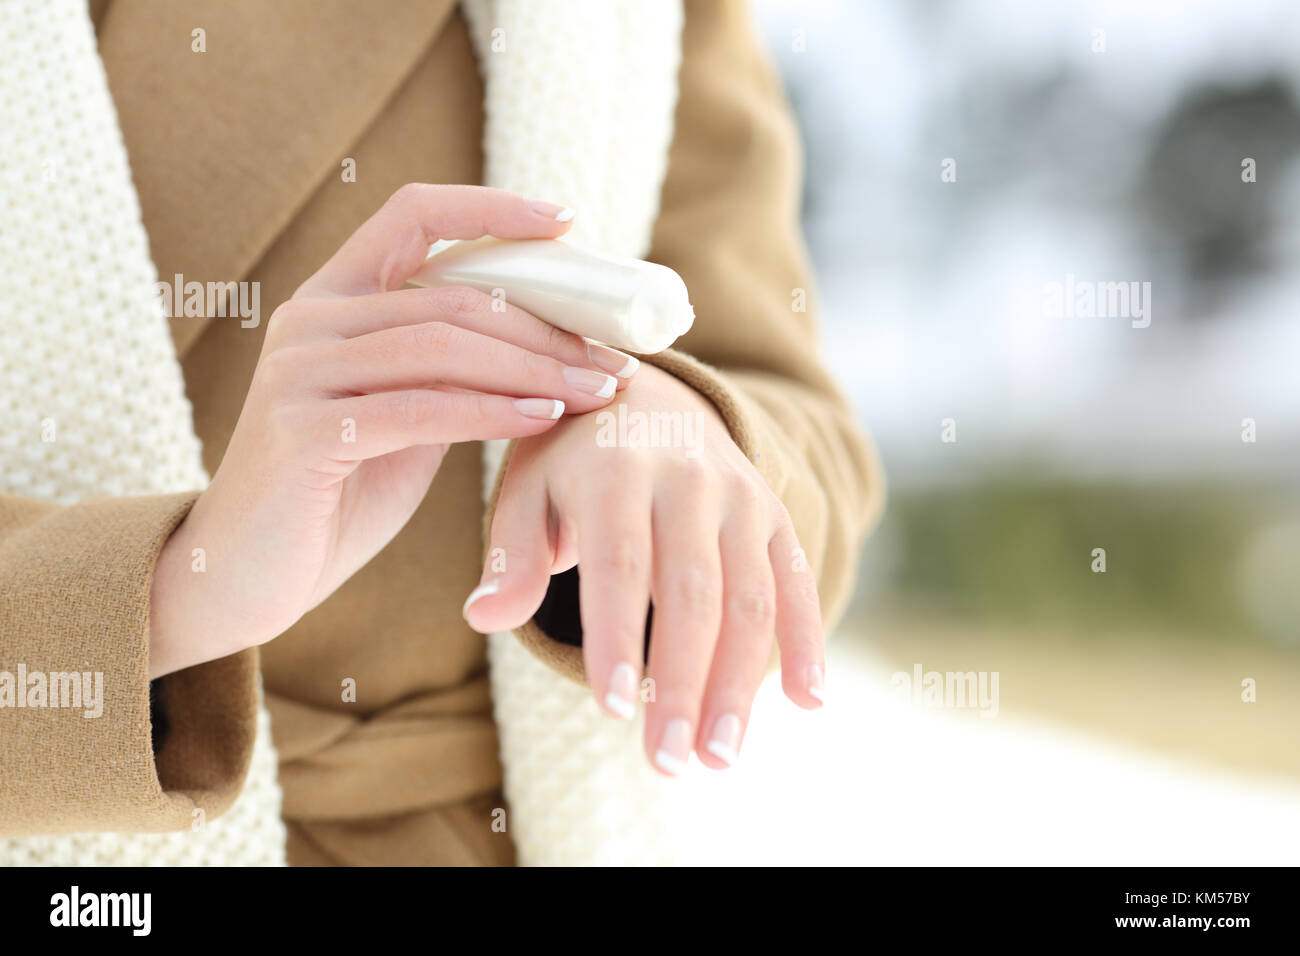 Close up of a woman hydrating hands with moisturizer cream in winter with a snowy mountain in the background - Stock Image